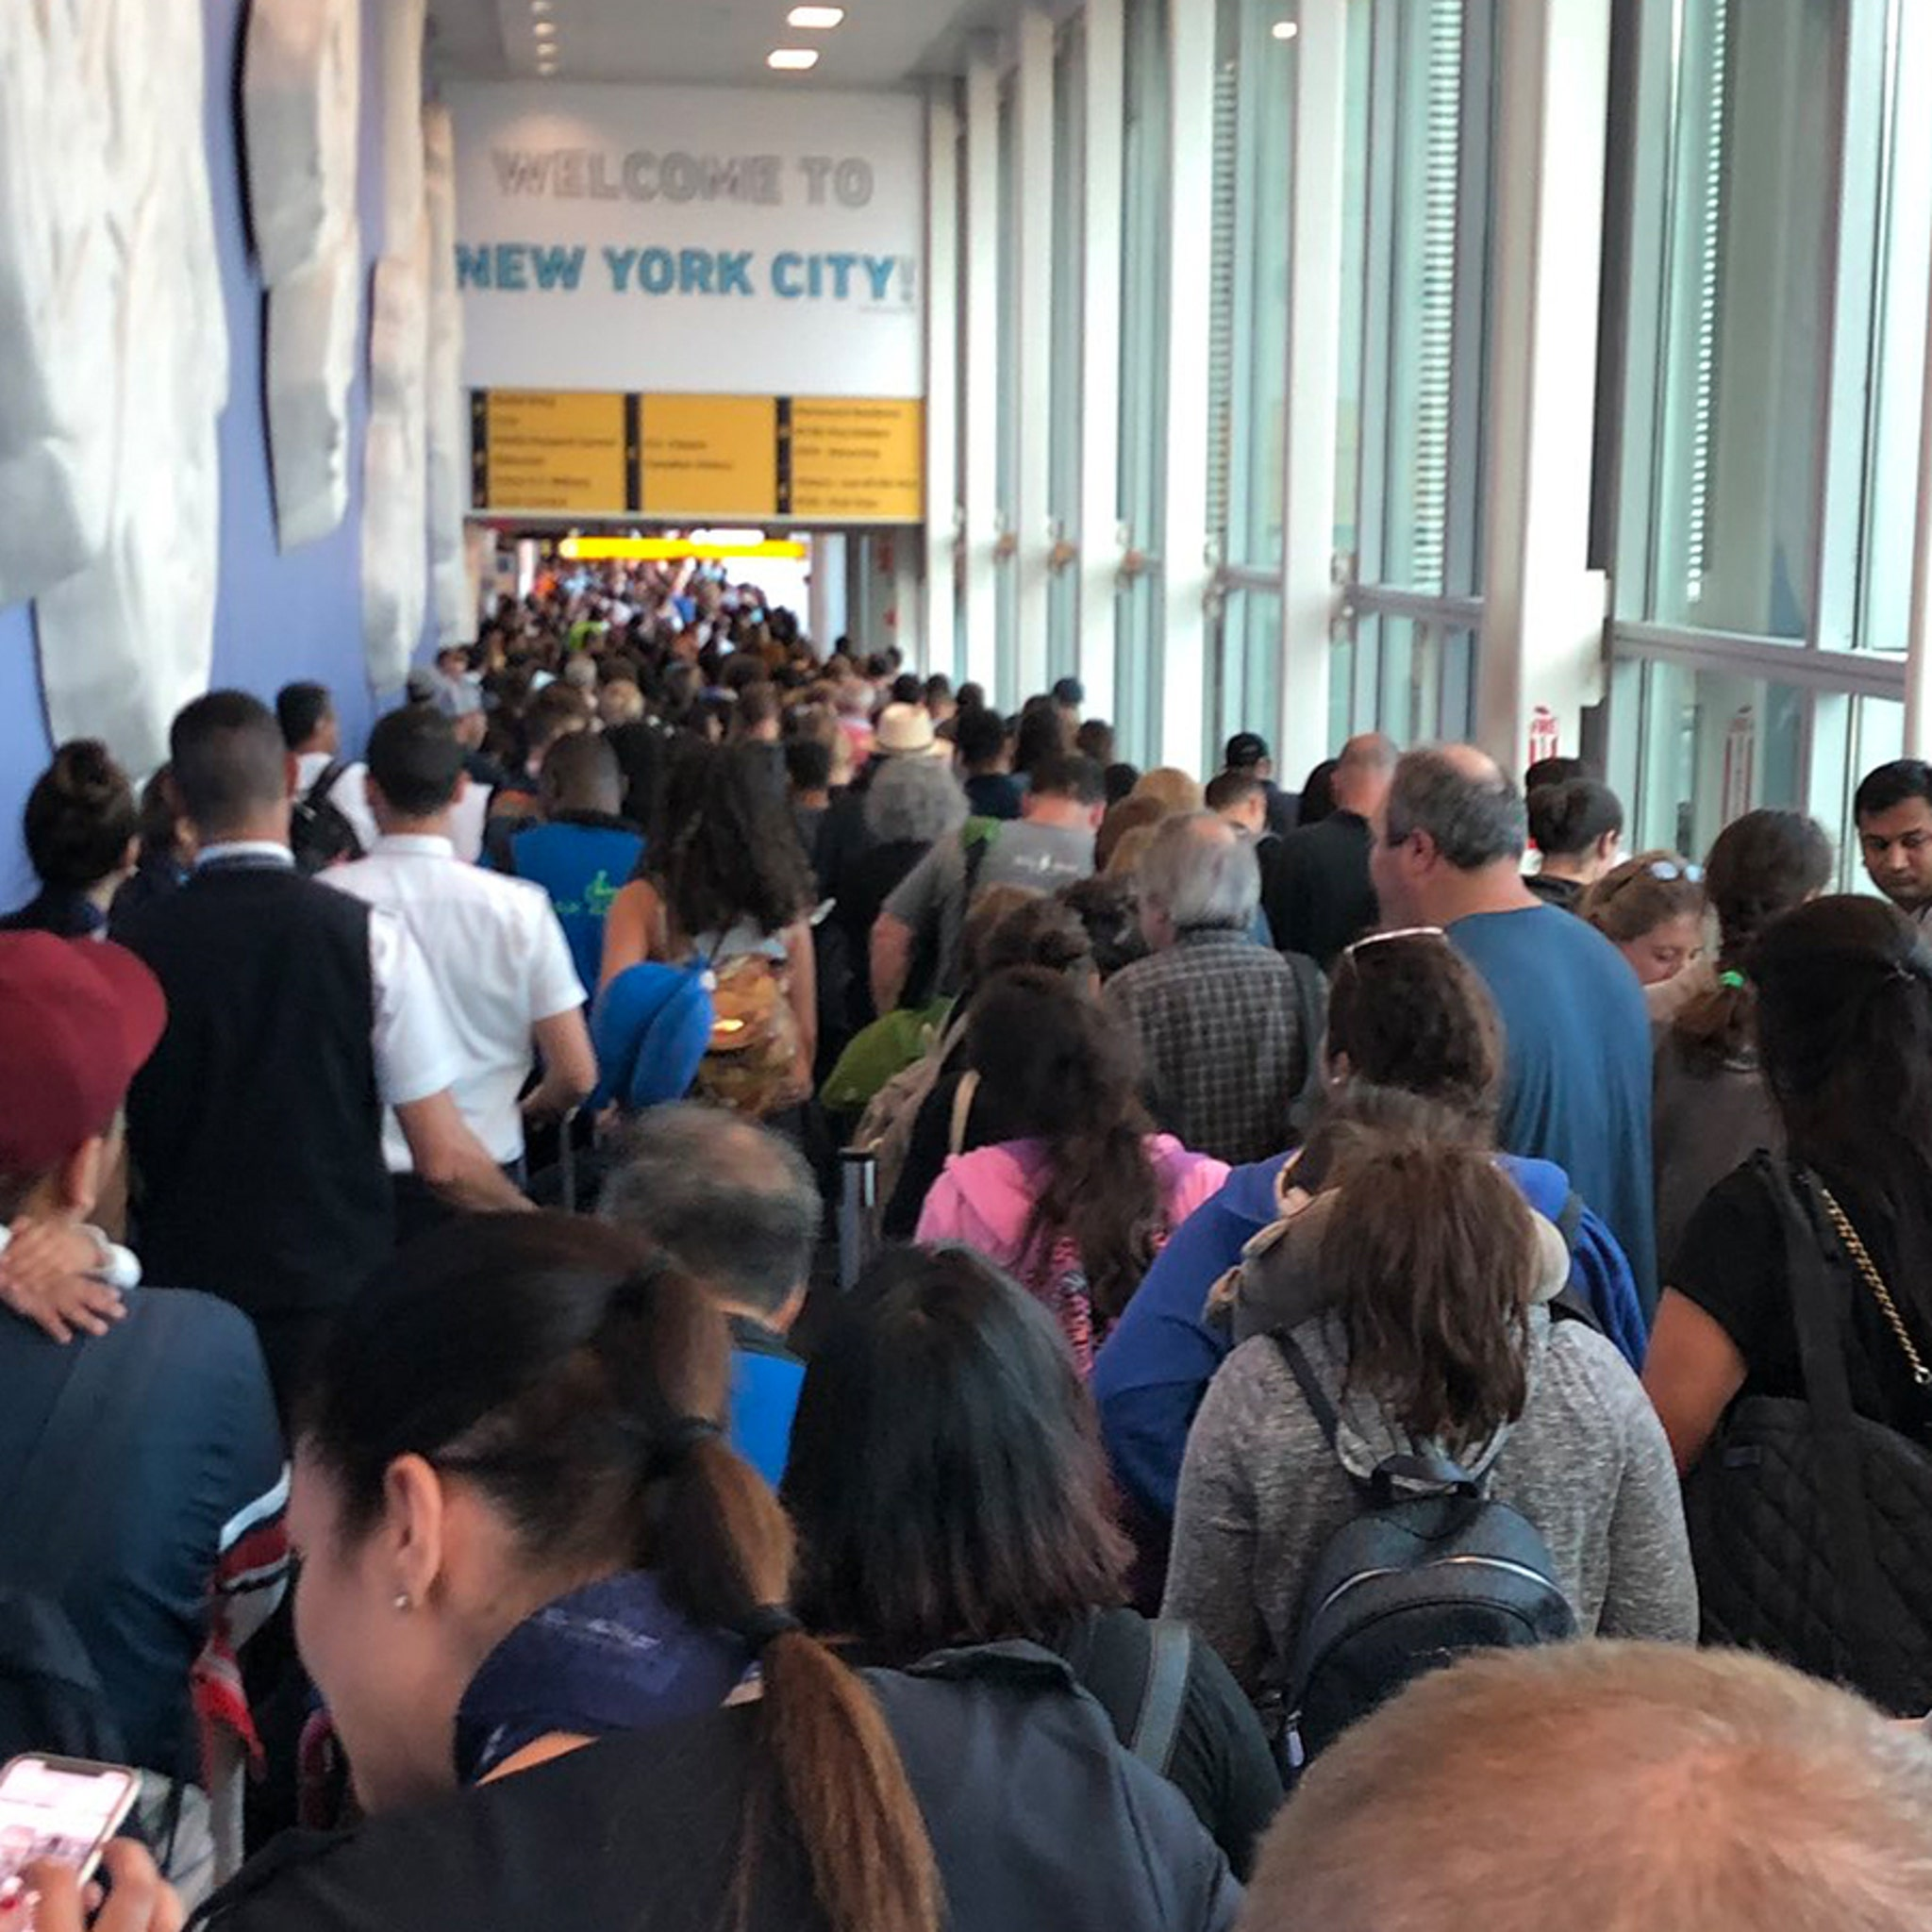 U.S. Customs Goes Down at Airports Nationwide